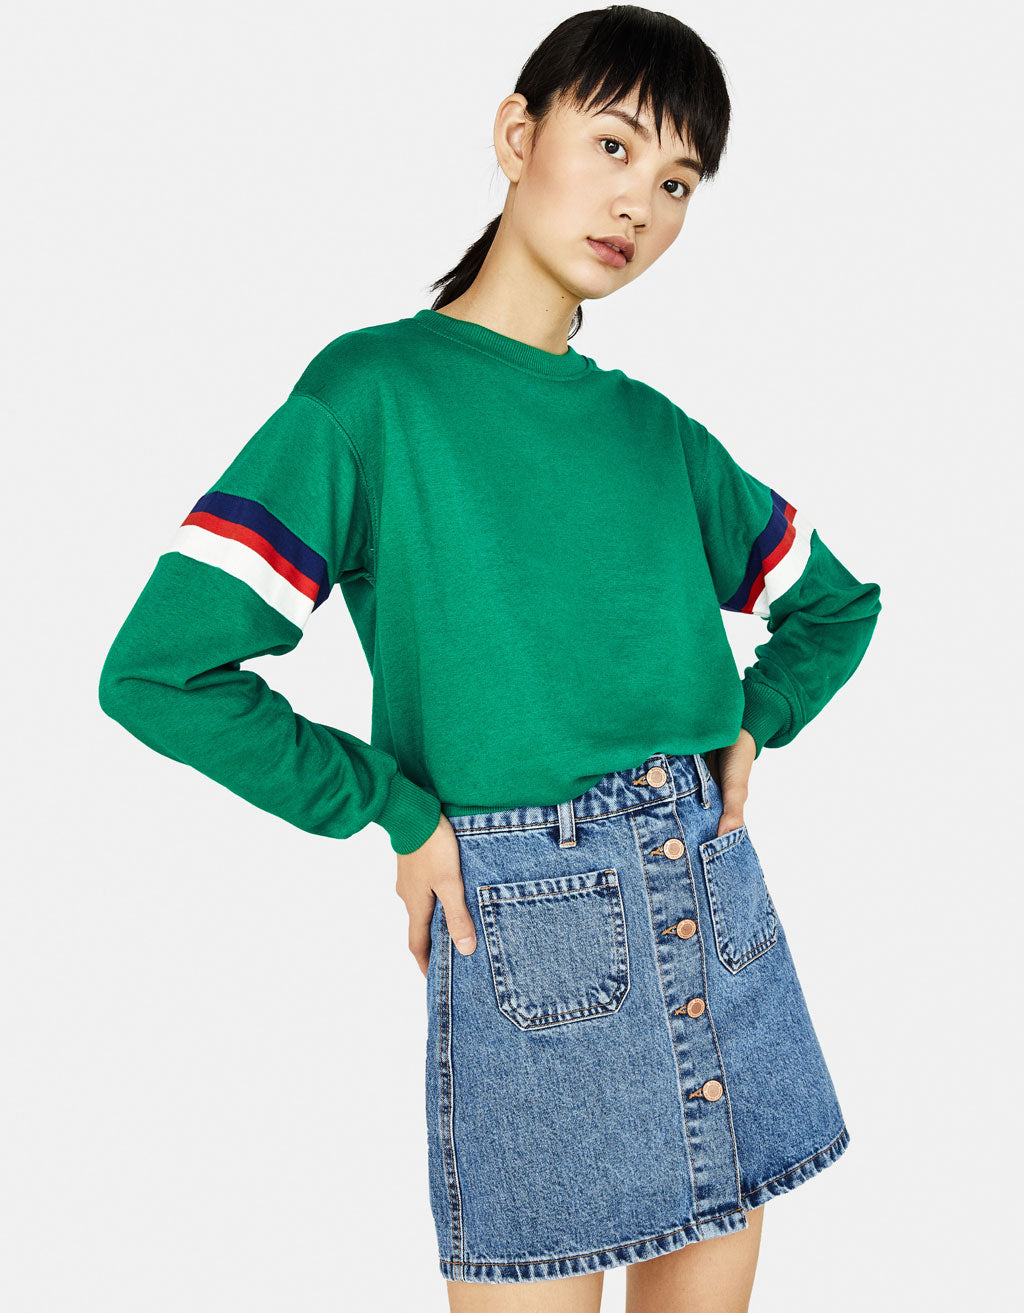 BSK - Green Crew neck Sweatshirt